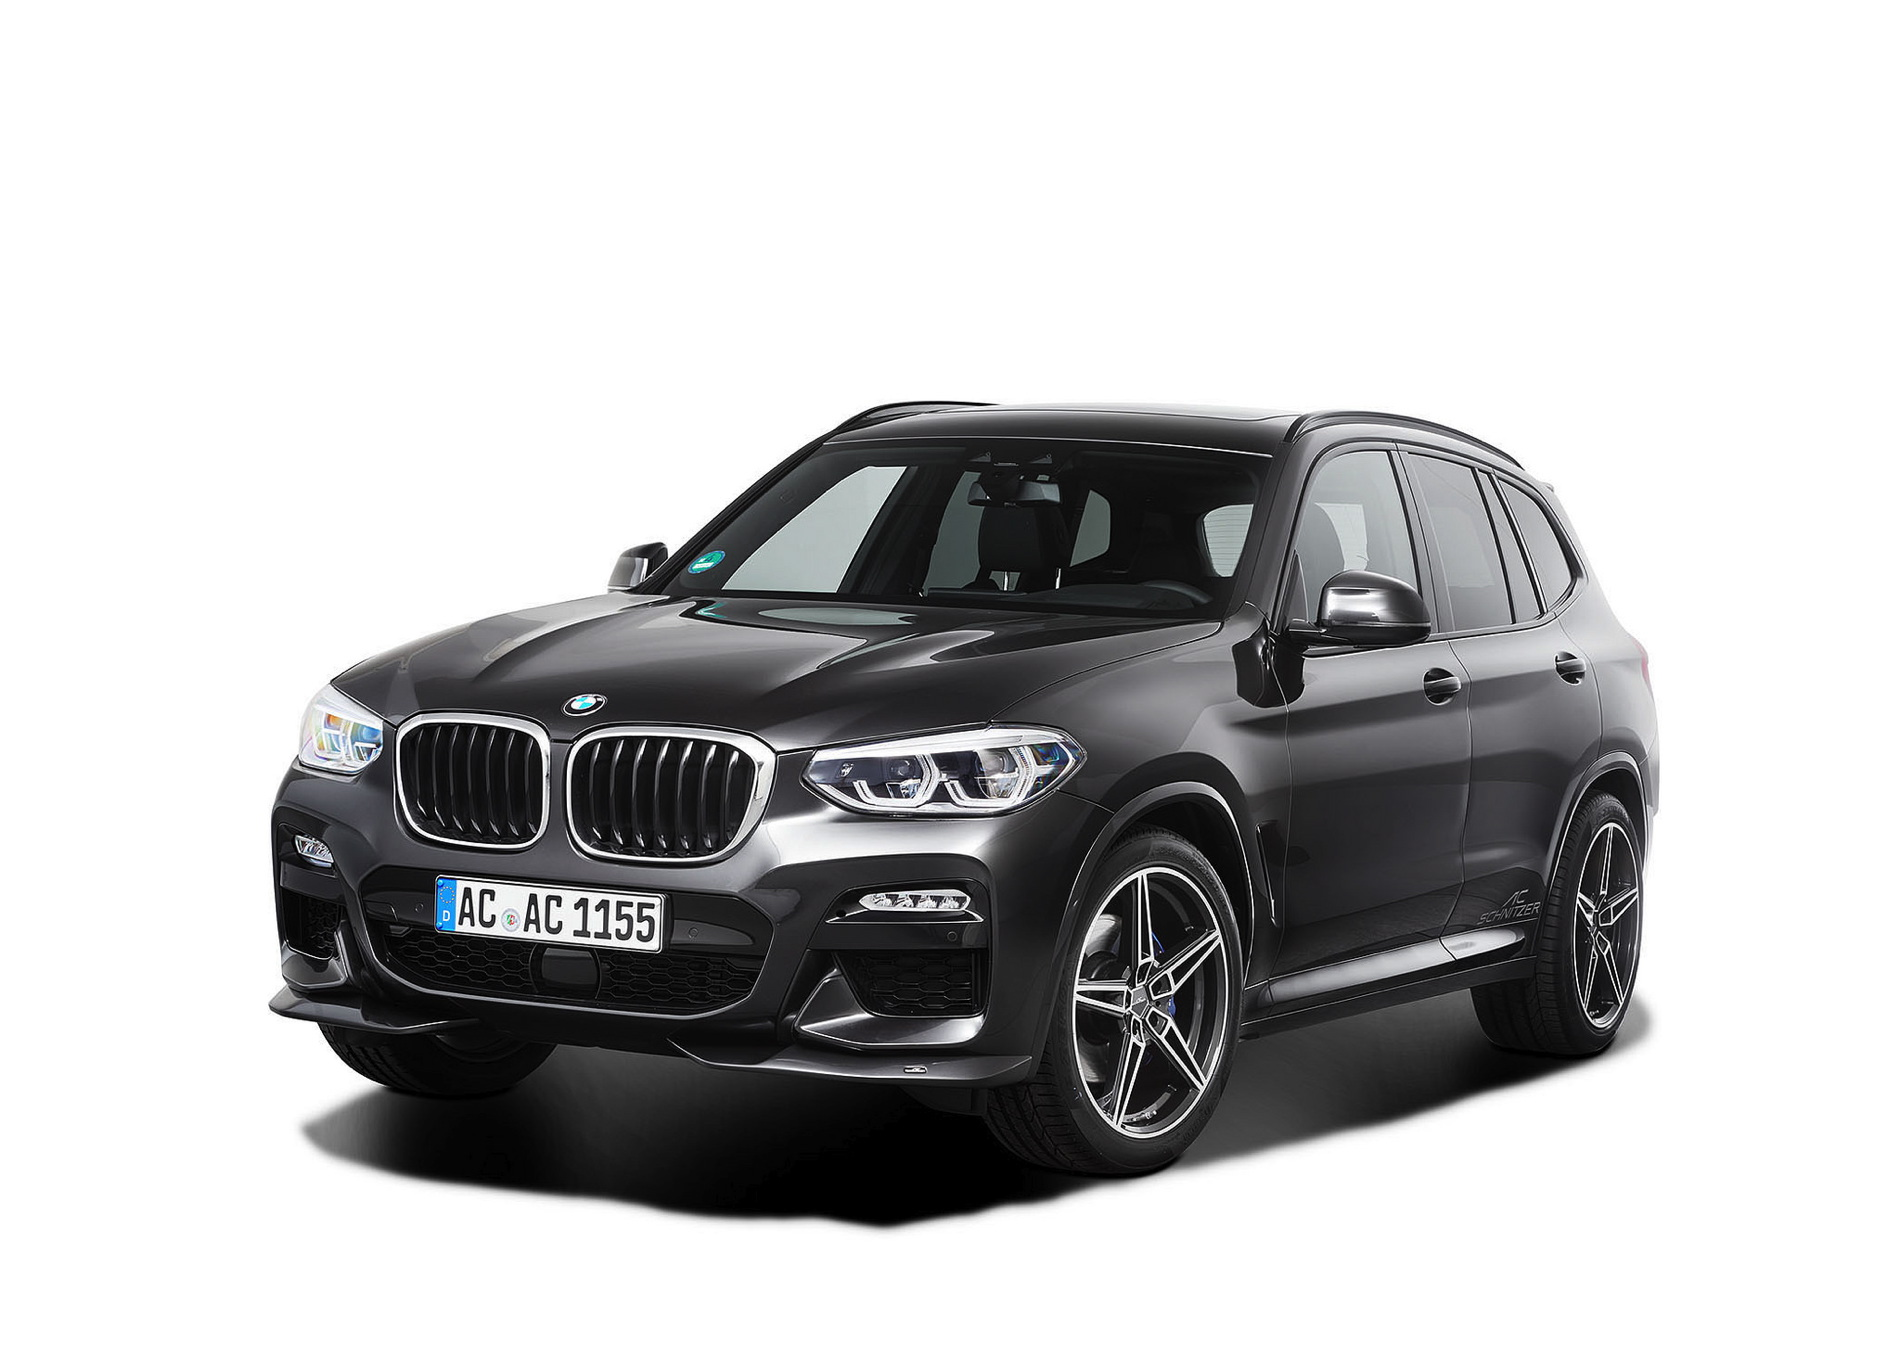 The Bmw X3 By Ac Schnitzer